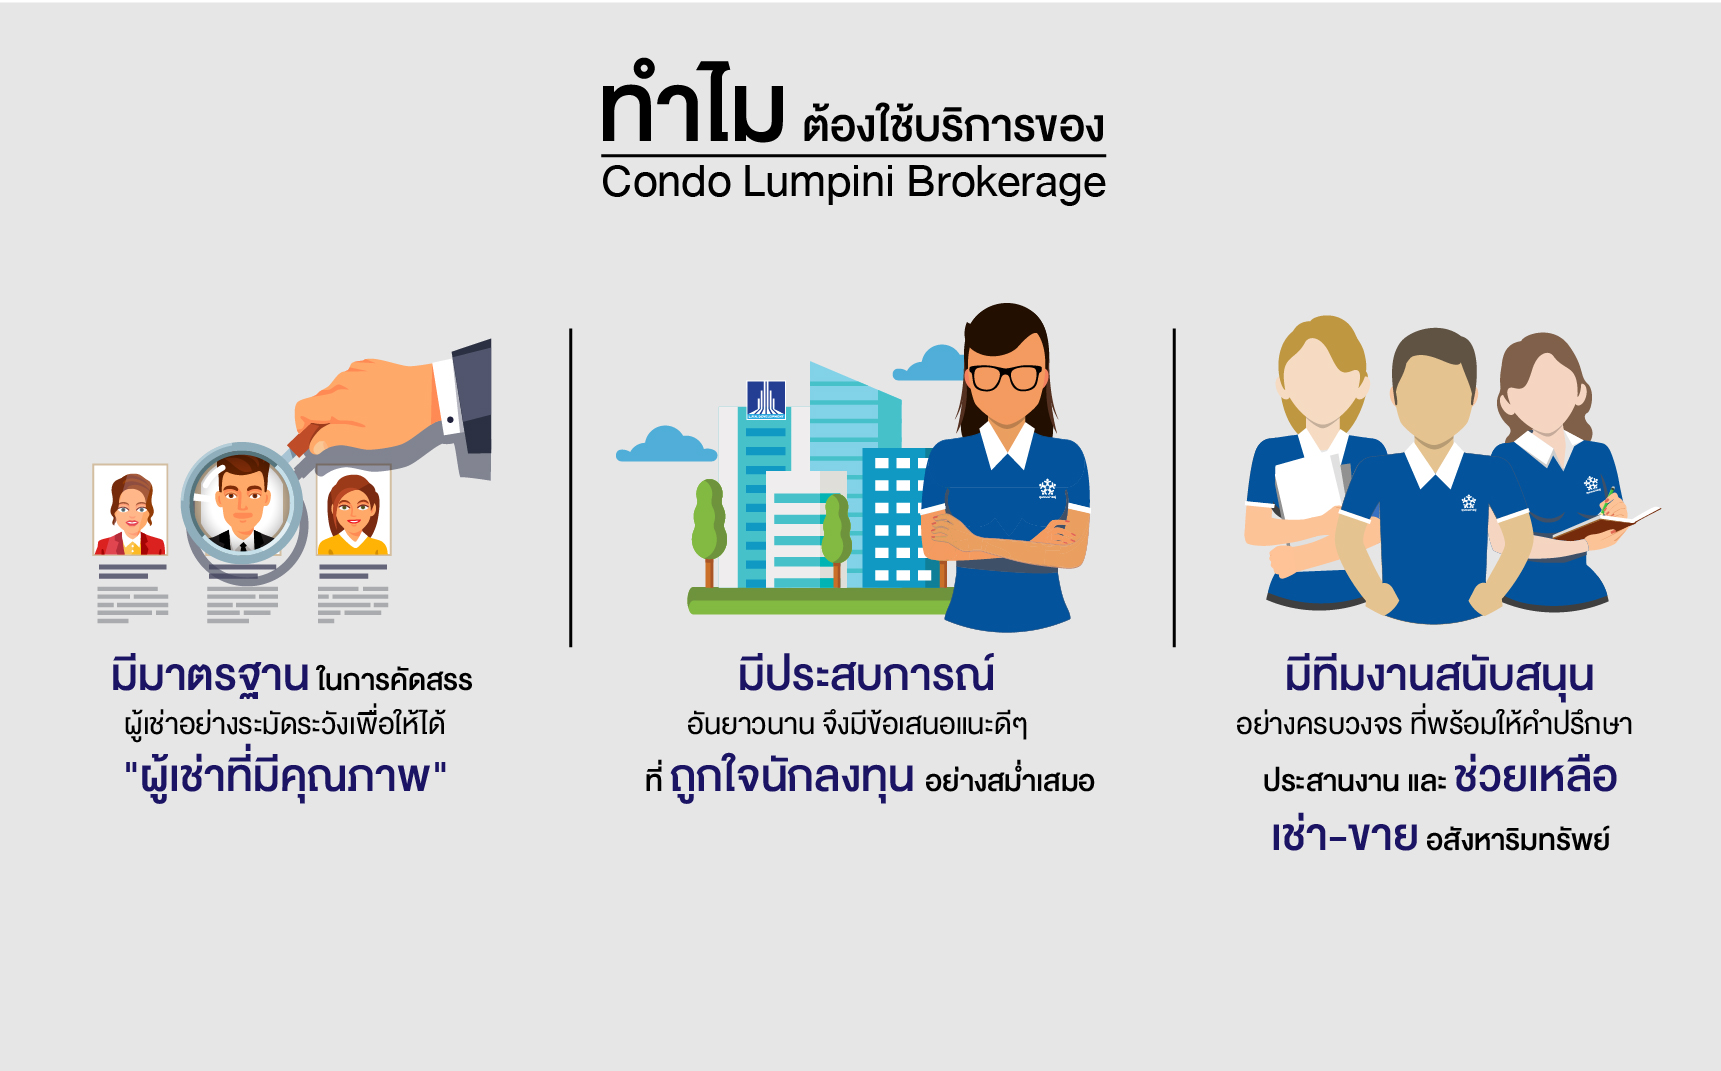 Condo Lumpini Brokerage